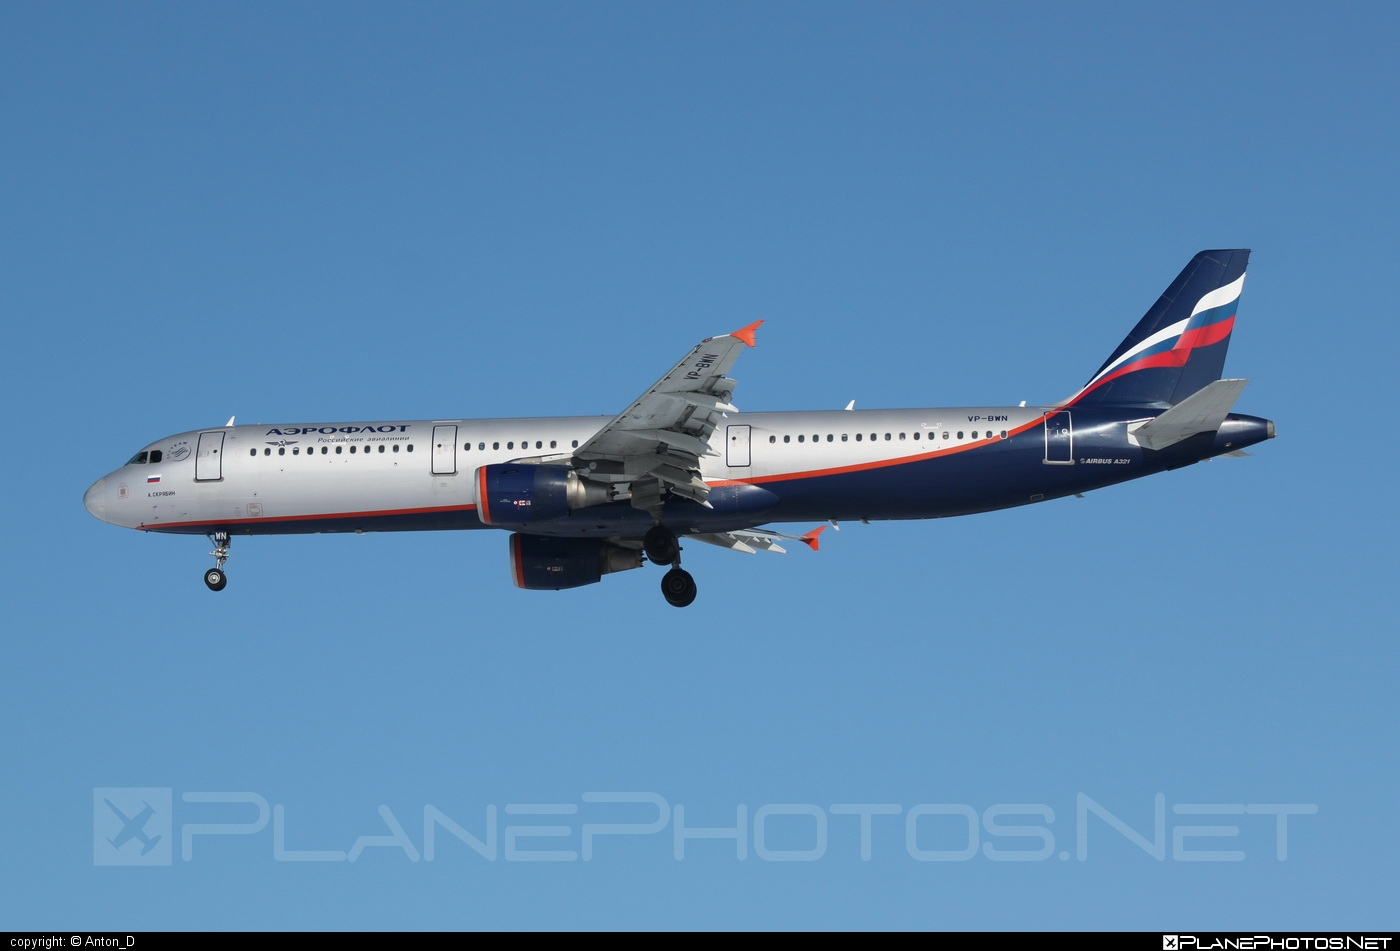 Airbus A321-211 - VP-BWN operated by Aeroflot #a320family #a321 #aeroflot #airbus #airbus321